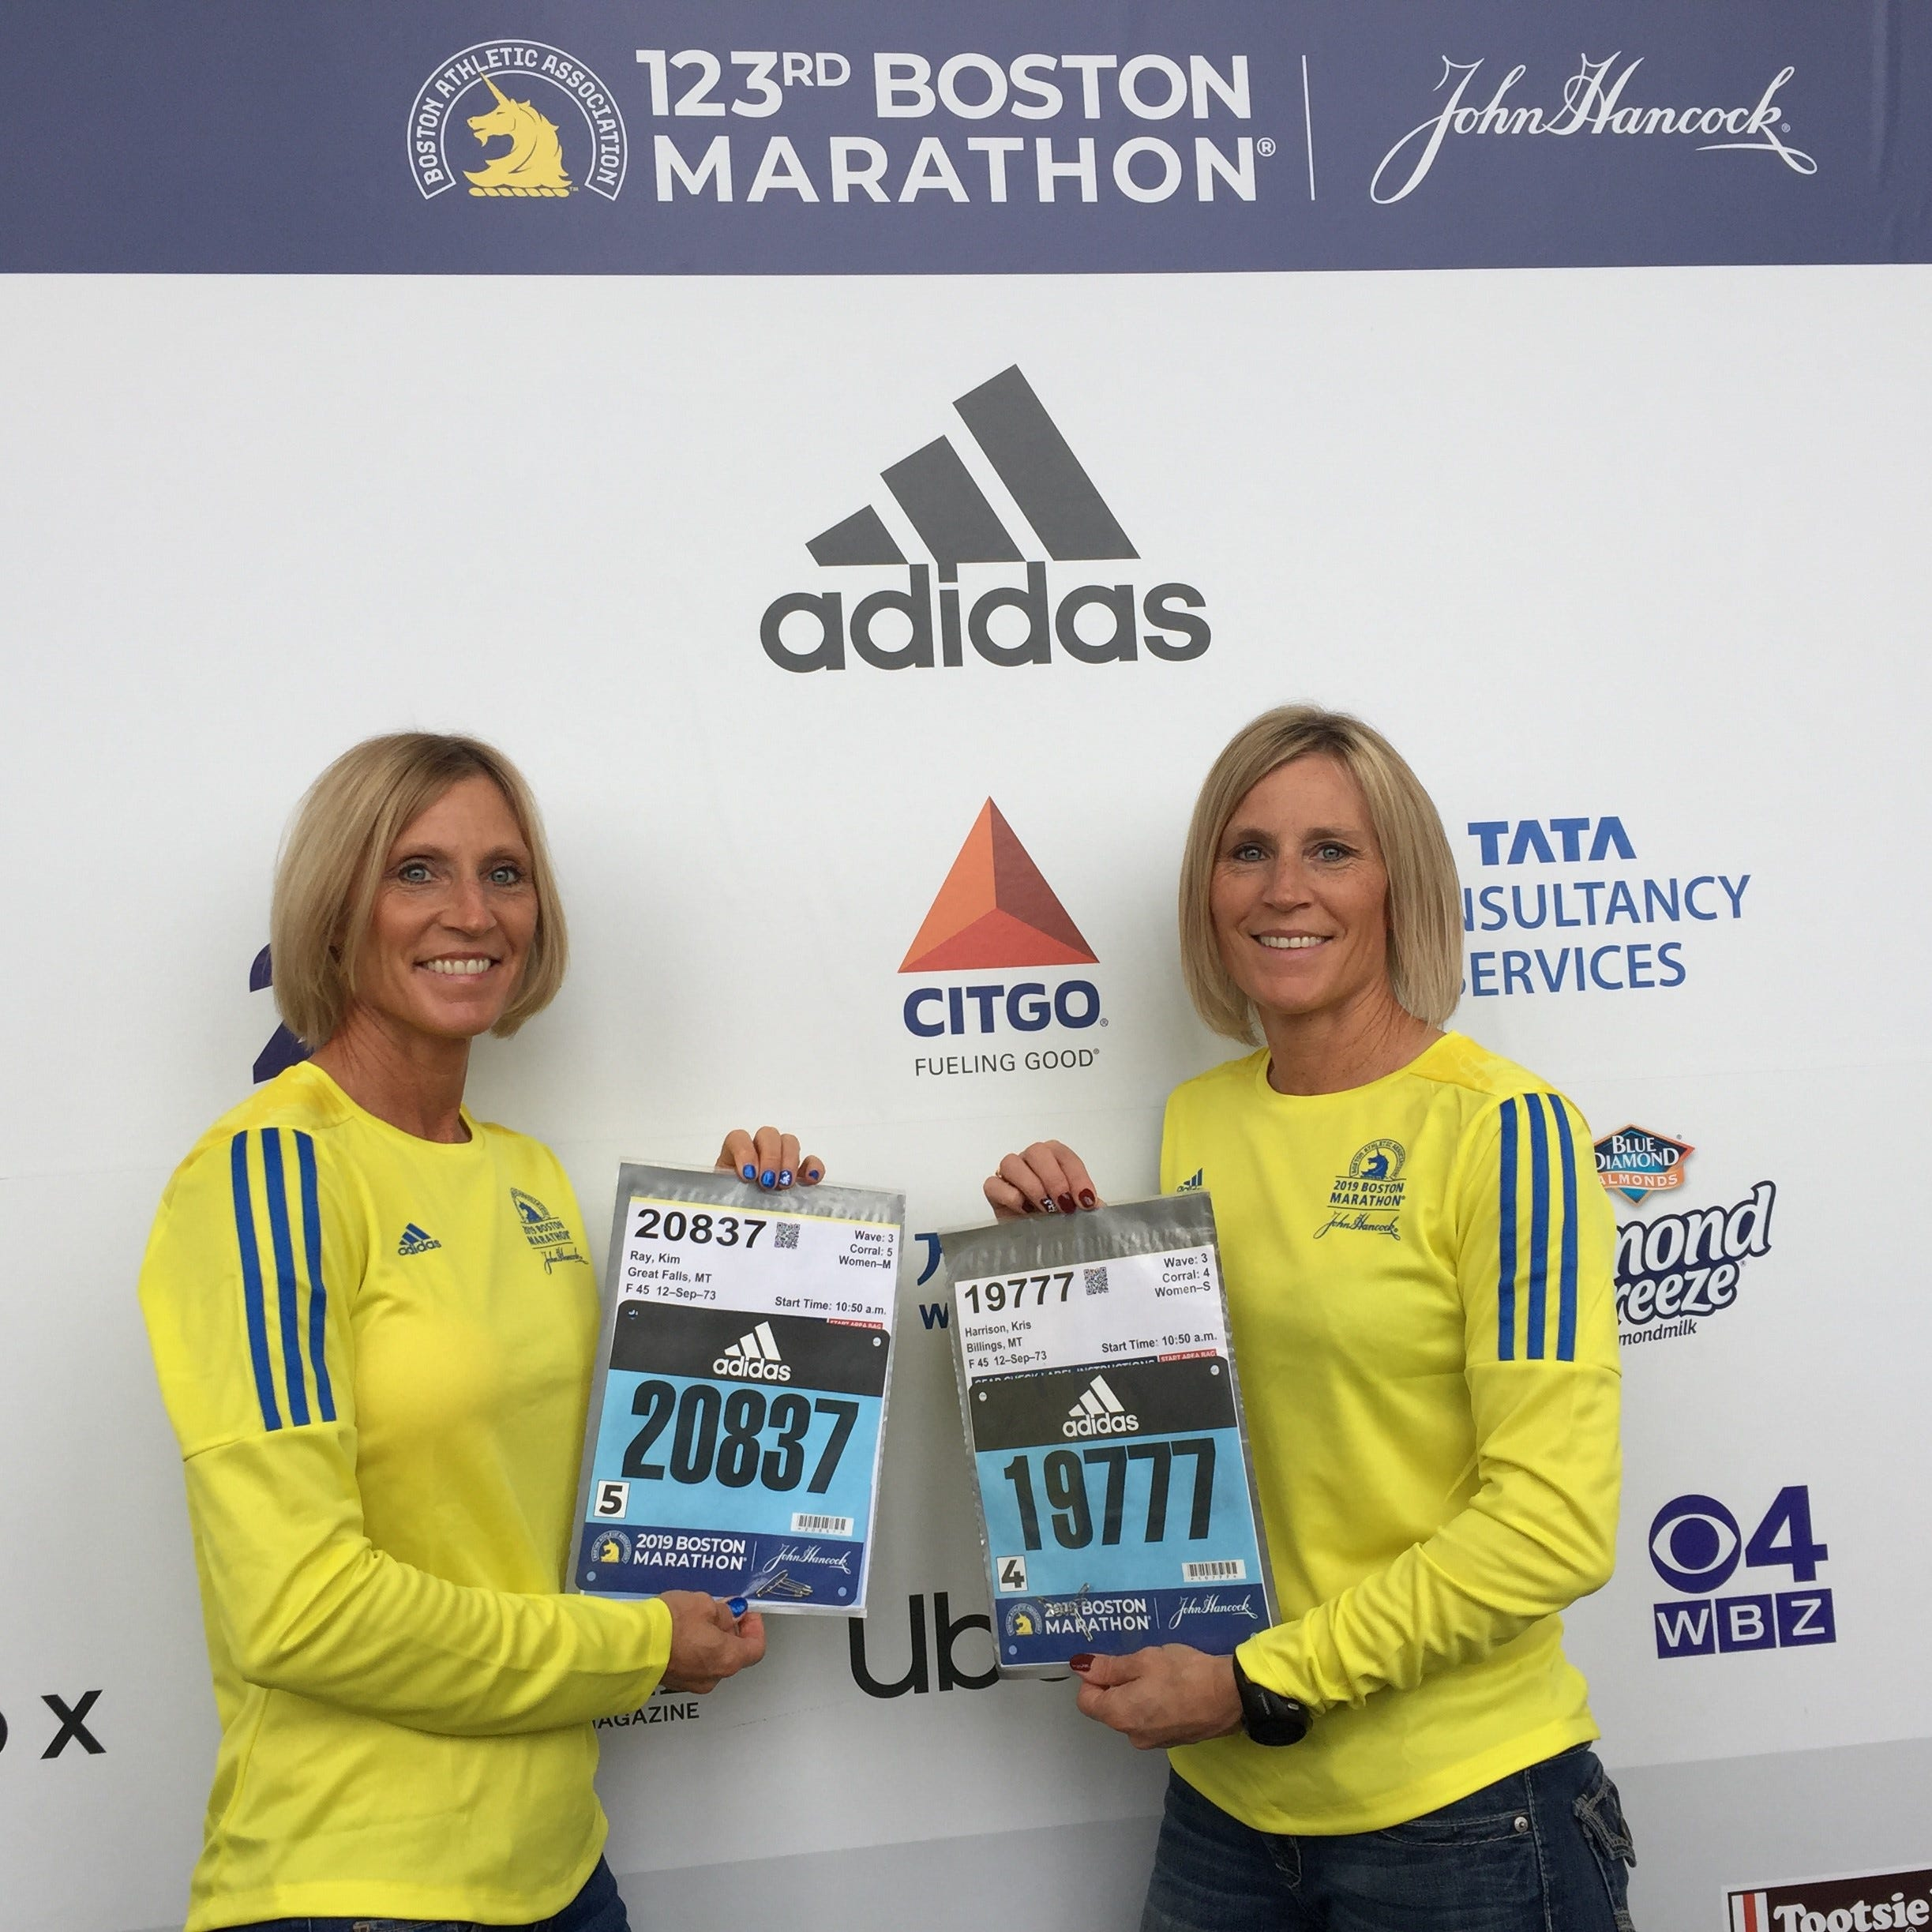 Twin sisters, CMR coach represent Great Falls at Boston Marathon